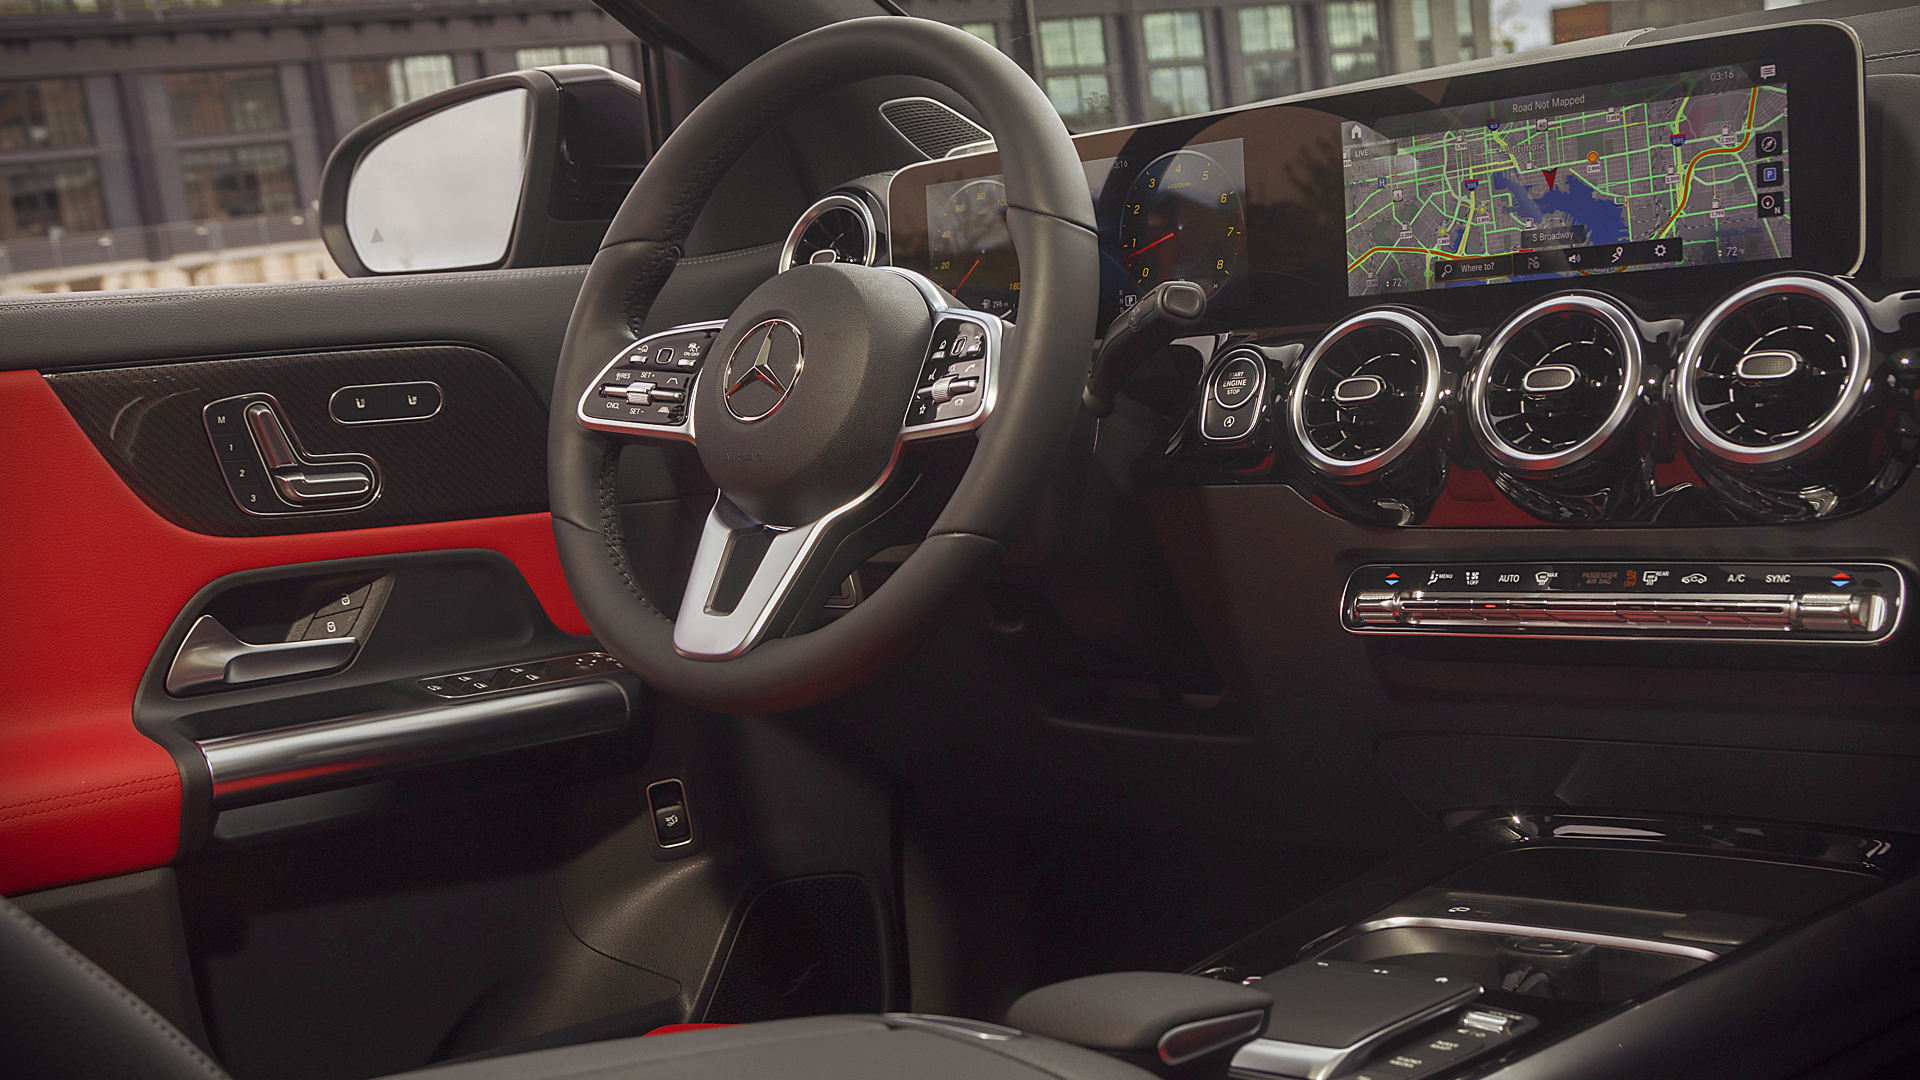 2021 Mercedes GLA 250 Interior